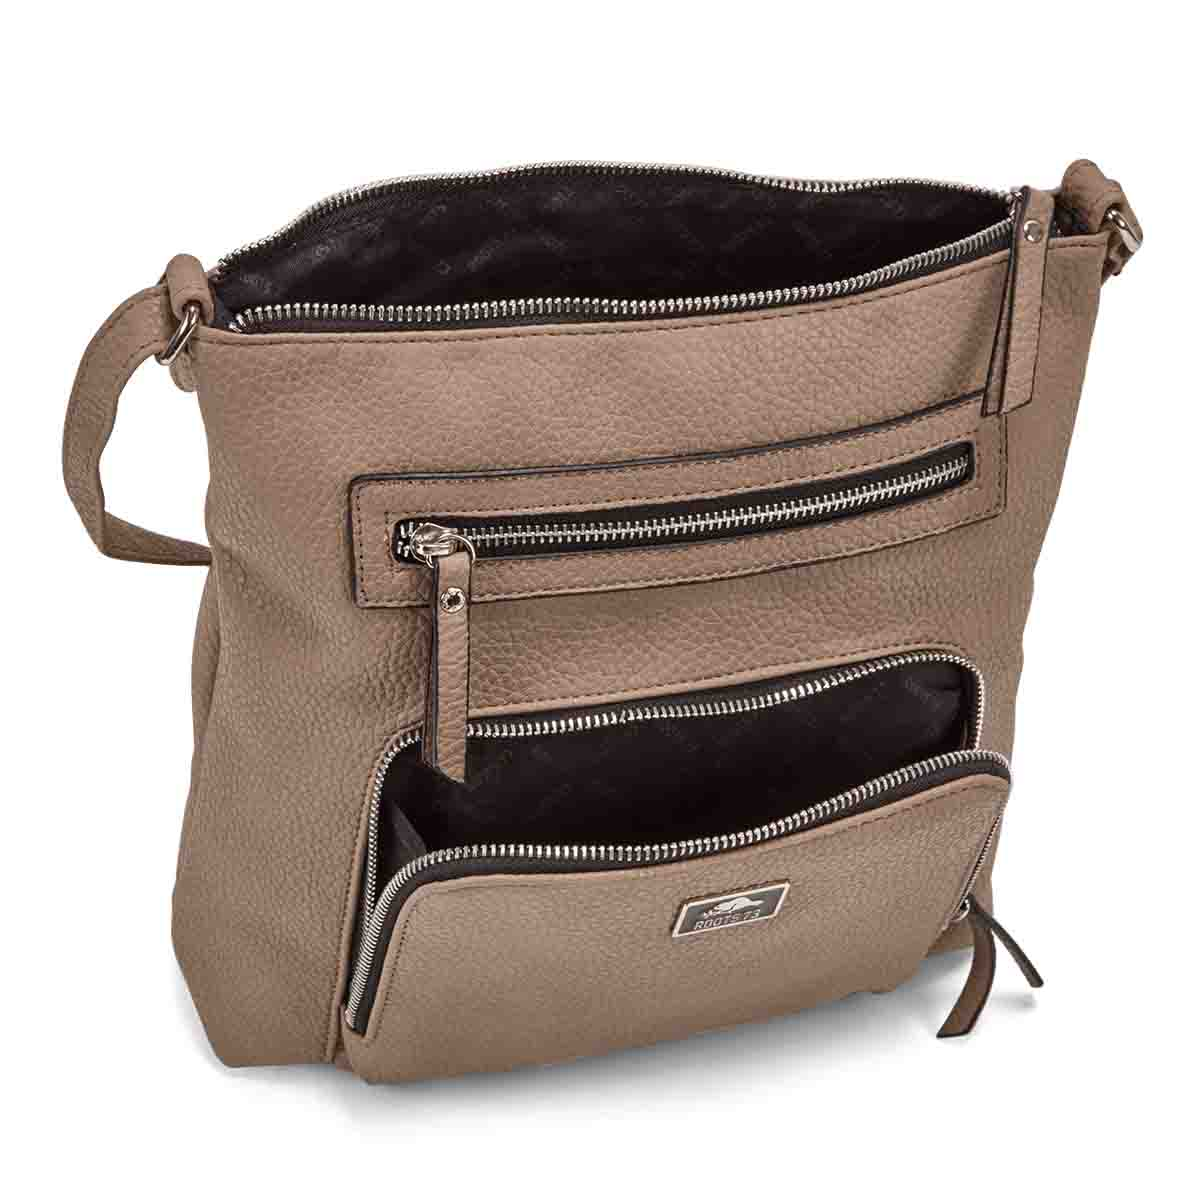 Lds Roots73 taupe north/south cross body